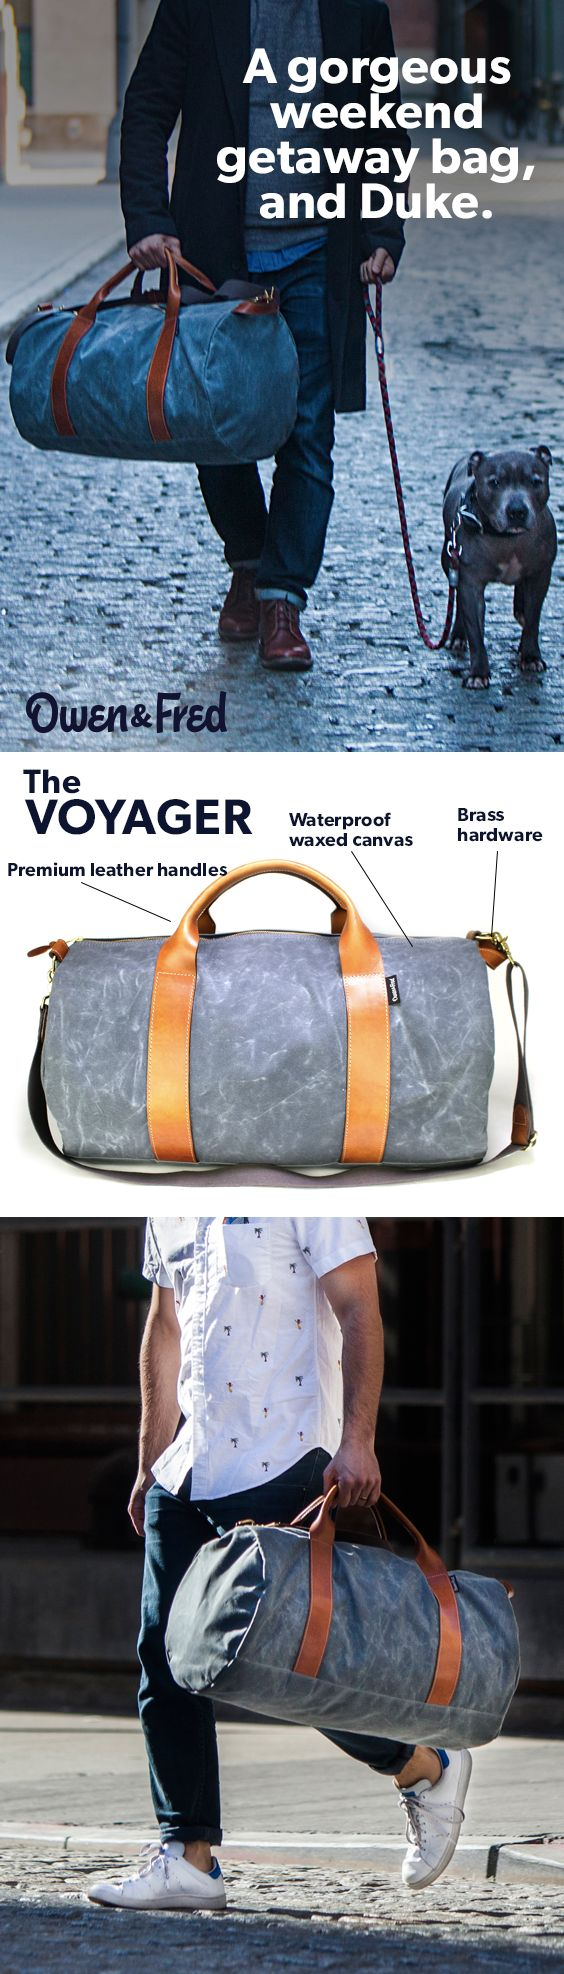 Introducing the Voyager Waxed Canvas weekend bag, with premium leather. All USA-made, perfectly sized and gorgeous.